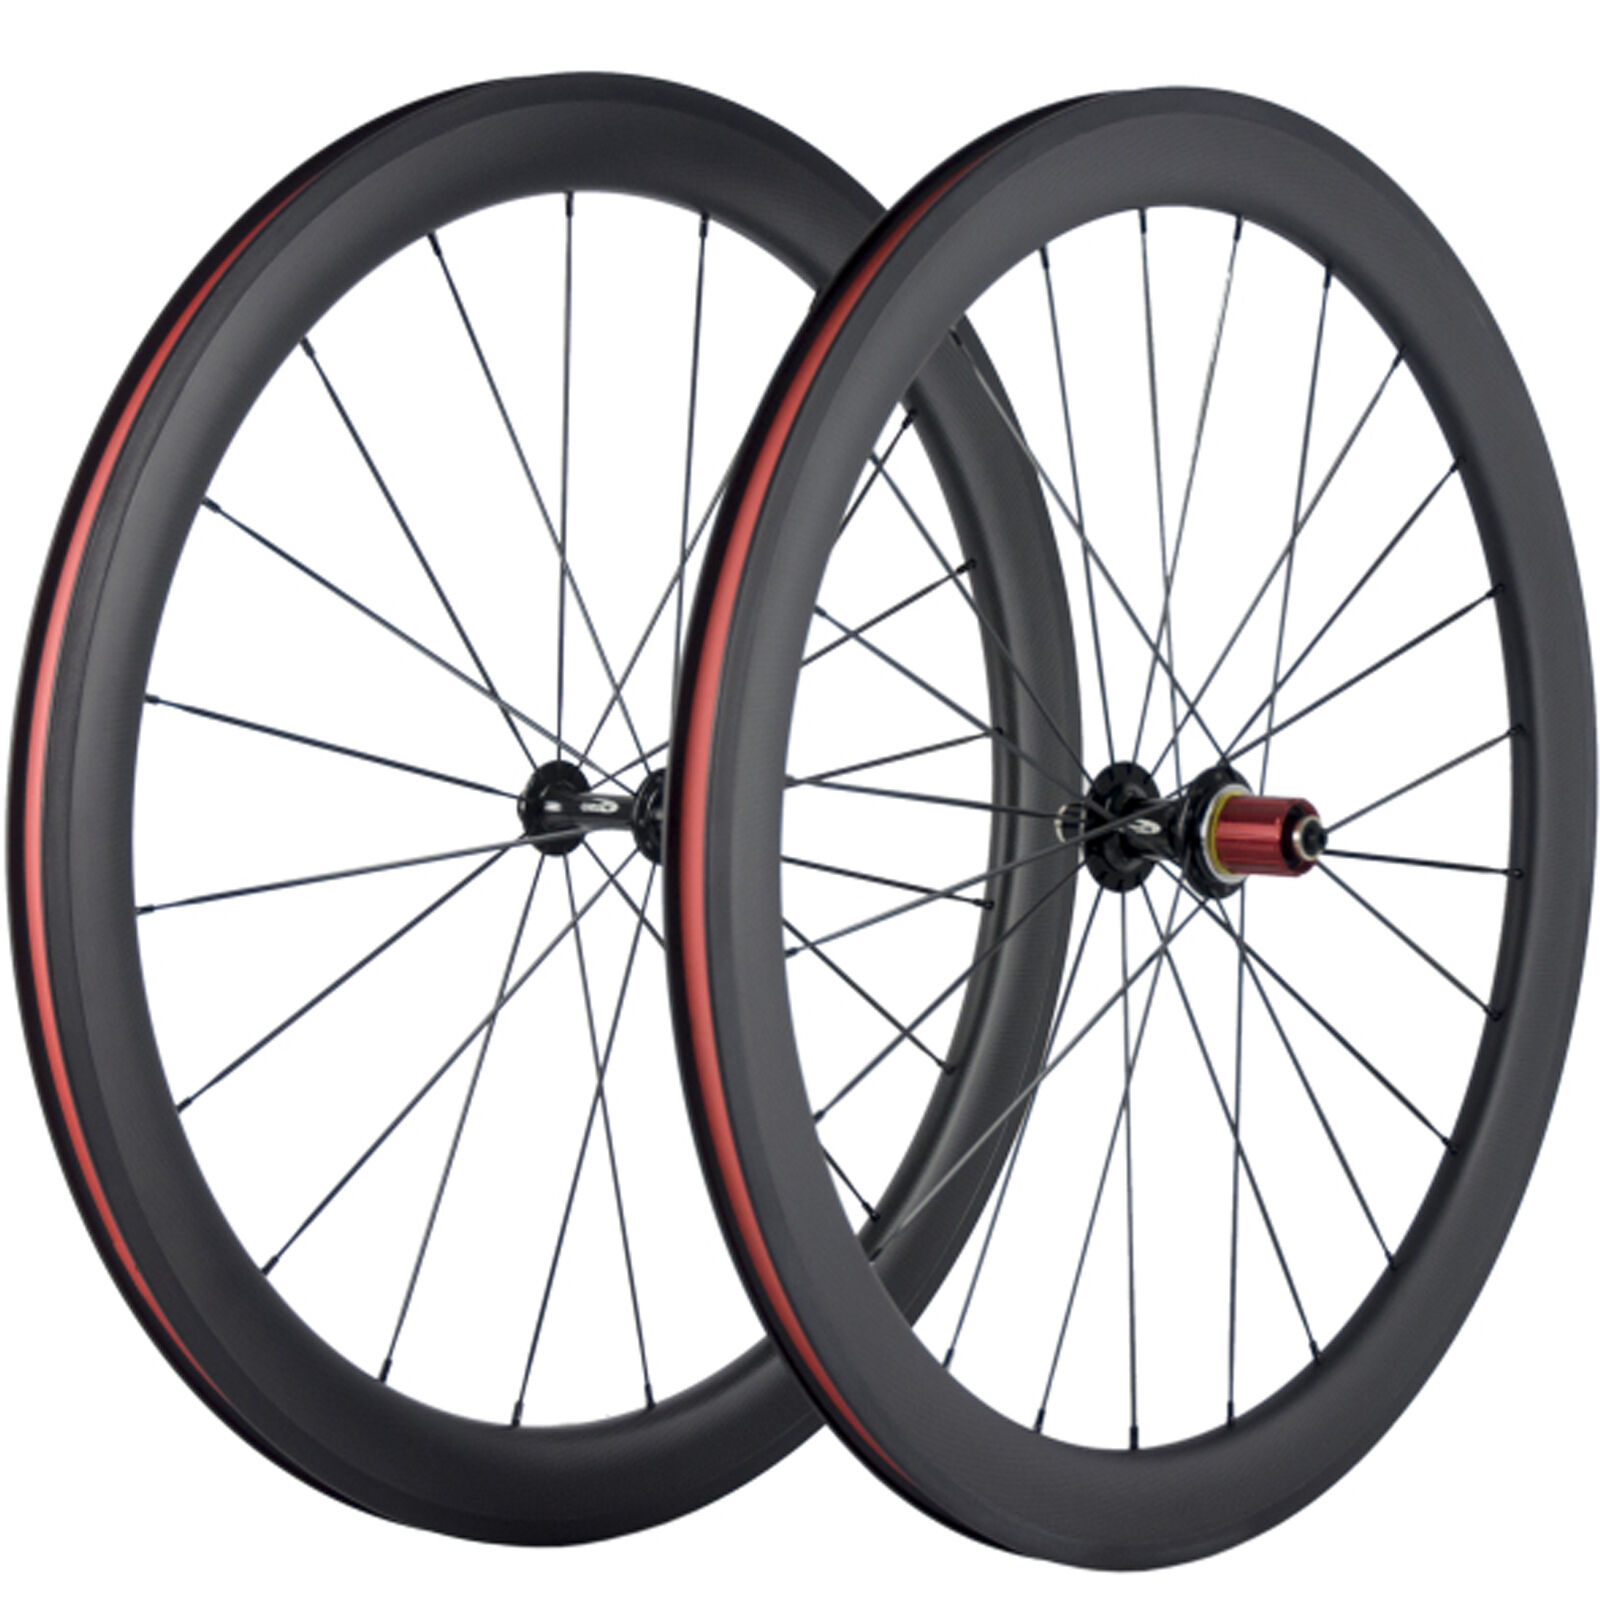 Carbon Wheelset Clincher Basalt  Braking 50mm Carbon Road Bike Wheels Chosen 5047  fast delivery and free shipping on all orders